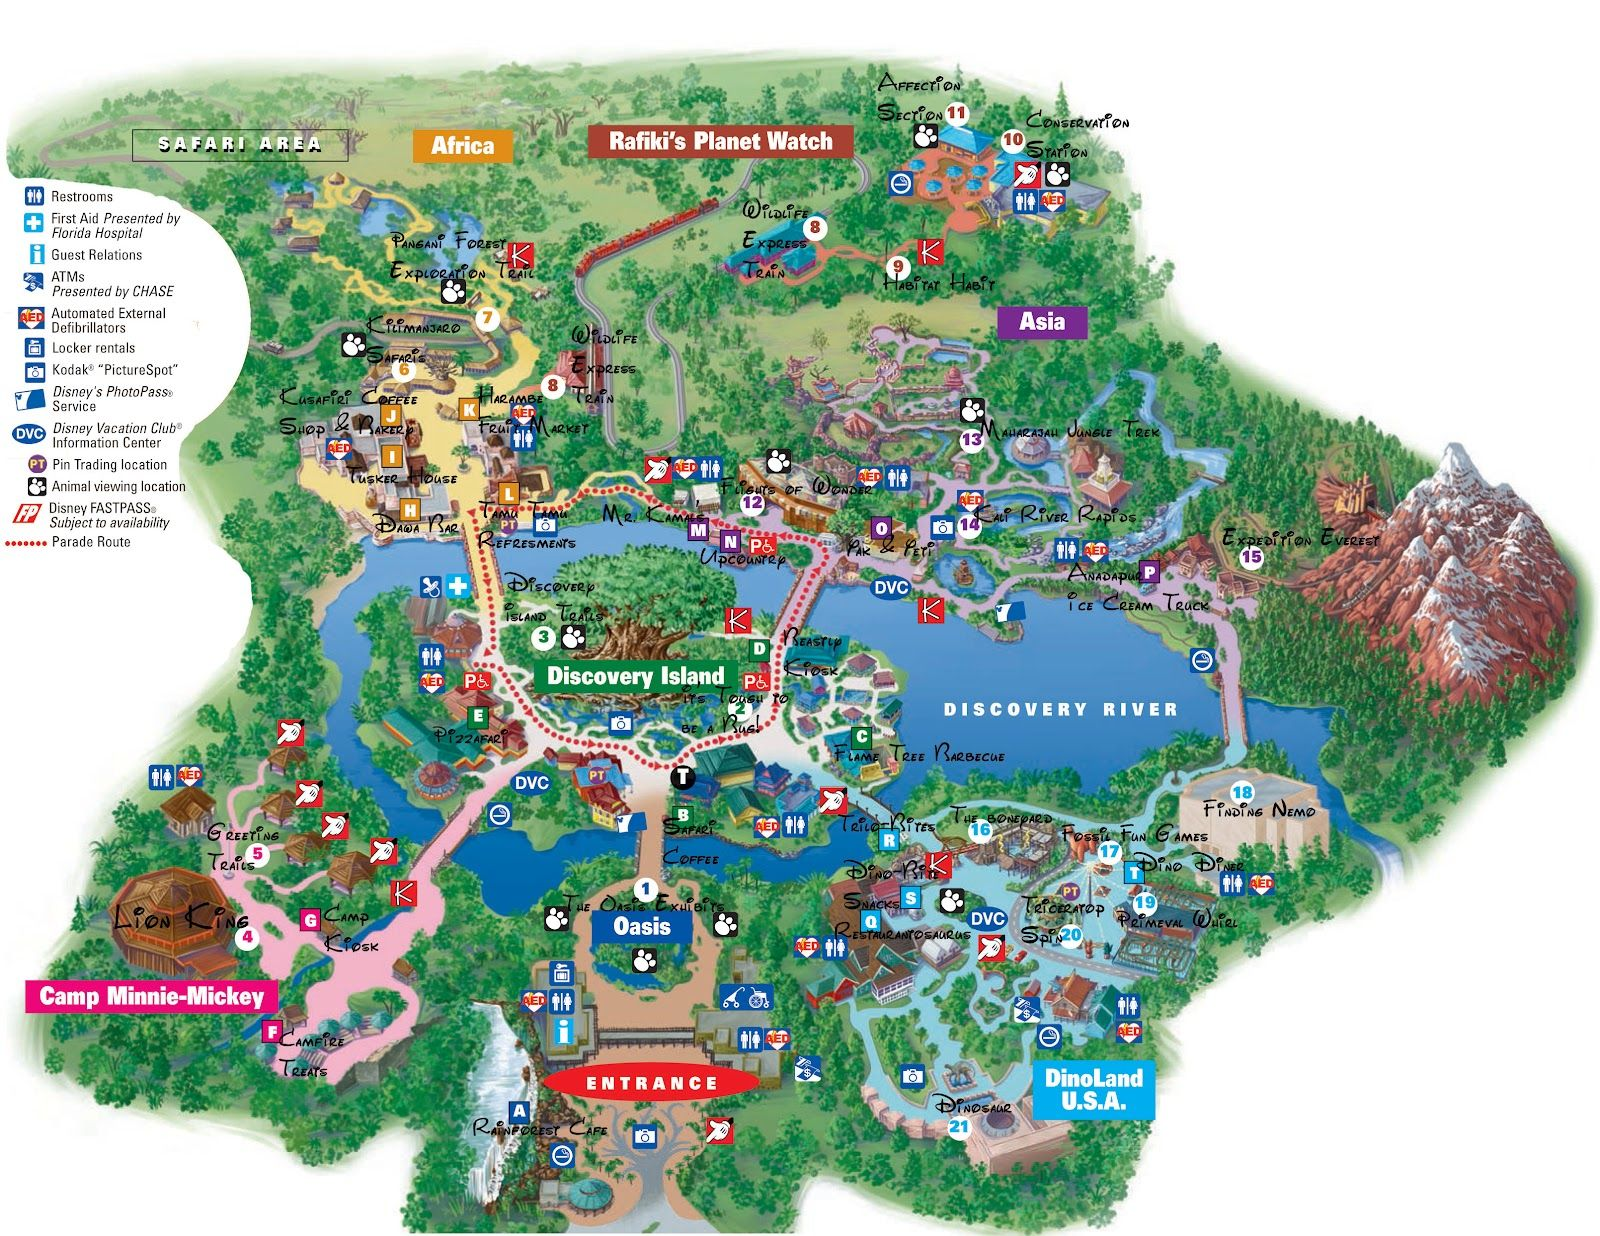 Disney World Animal Kingdom Map Disney World Adventure: Disney Animal Kingdom Map | Disney World  Disney World Animal Kingdom Map